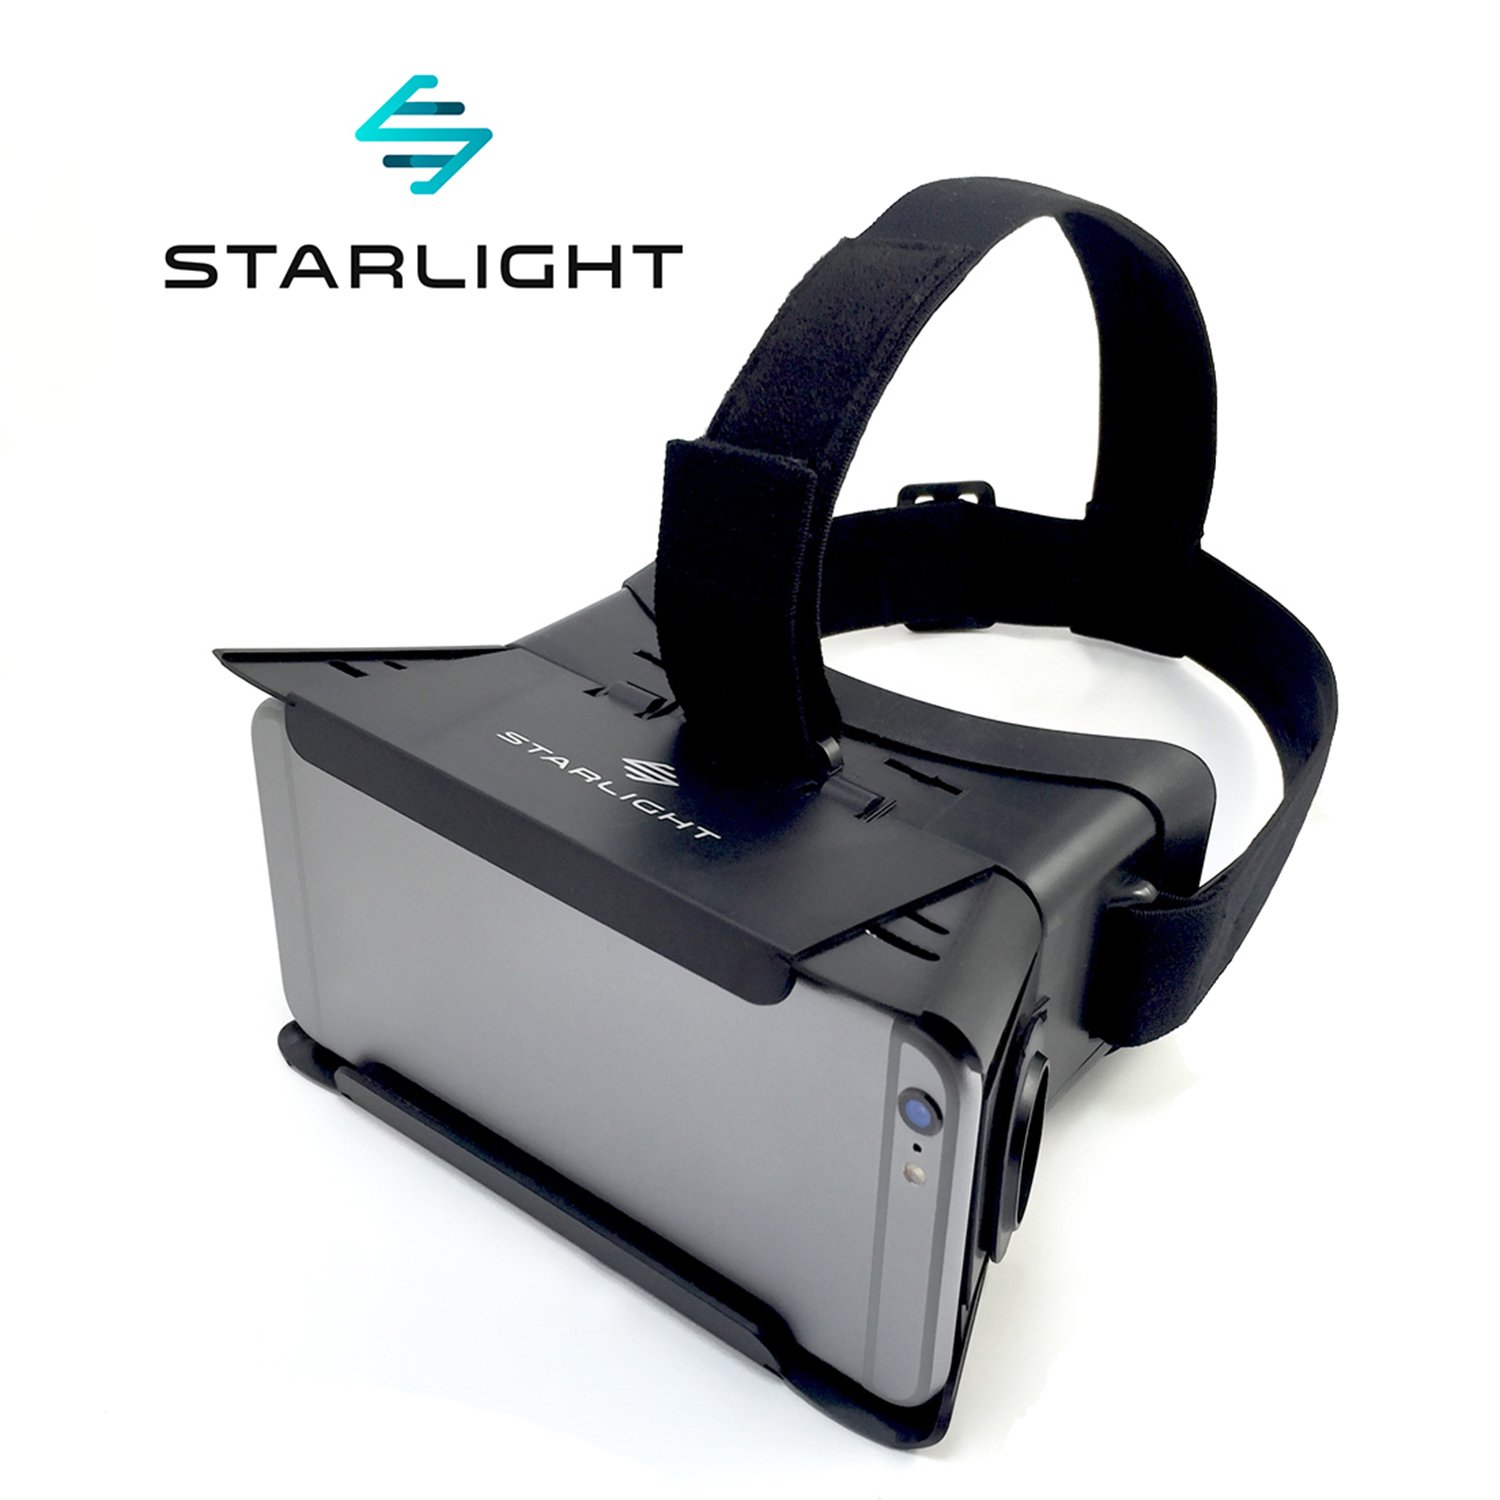 Starlight Virtual Reality VR Headset: 3D Adjustable Goggle Glasses for 3.35'' - 6.5'' iPhone or Android Smartphones and Google Cardboard Mobile VR Apps; Focal and Pupil Distance Adjustment, AR or VR use